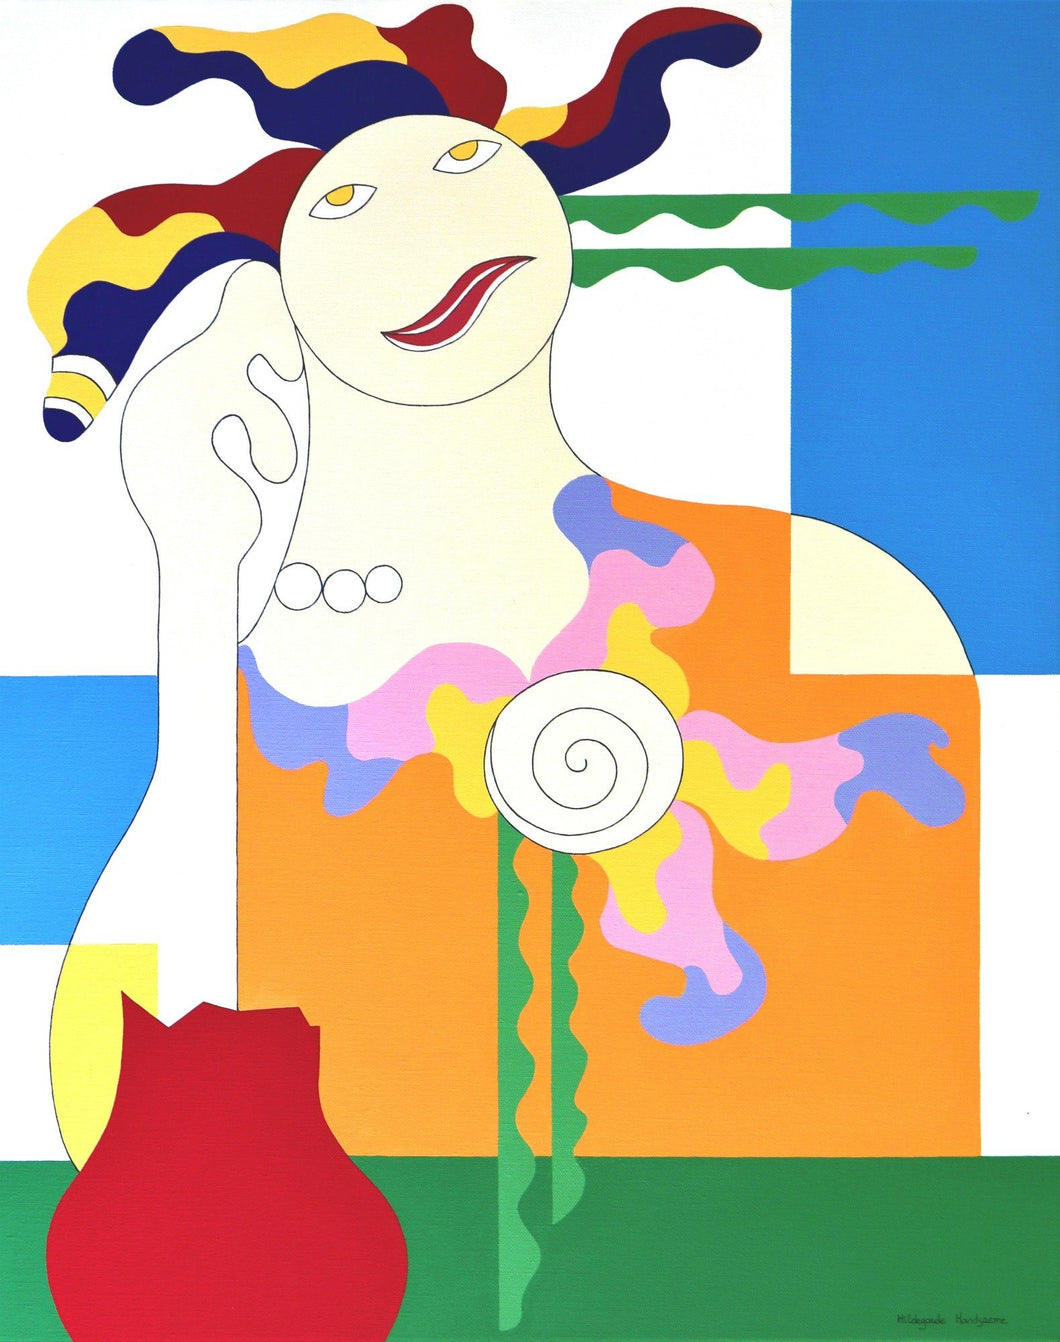 Battle by Hildegarde Handsaeme, Painting at Art Acacia Gallery & Advisory